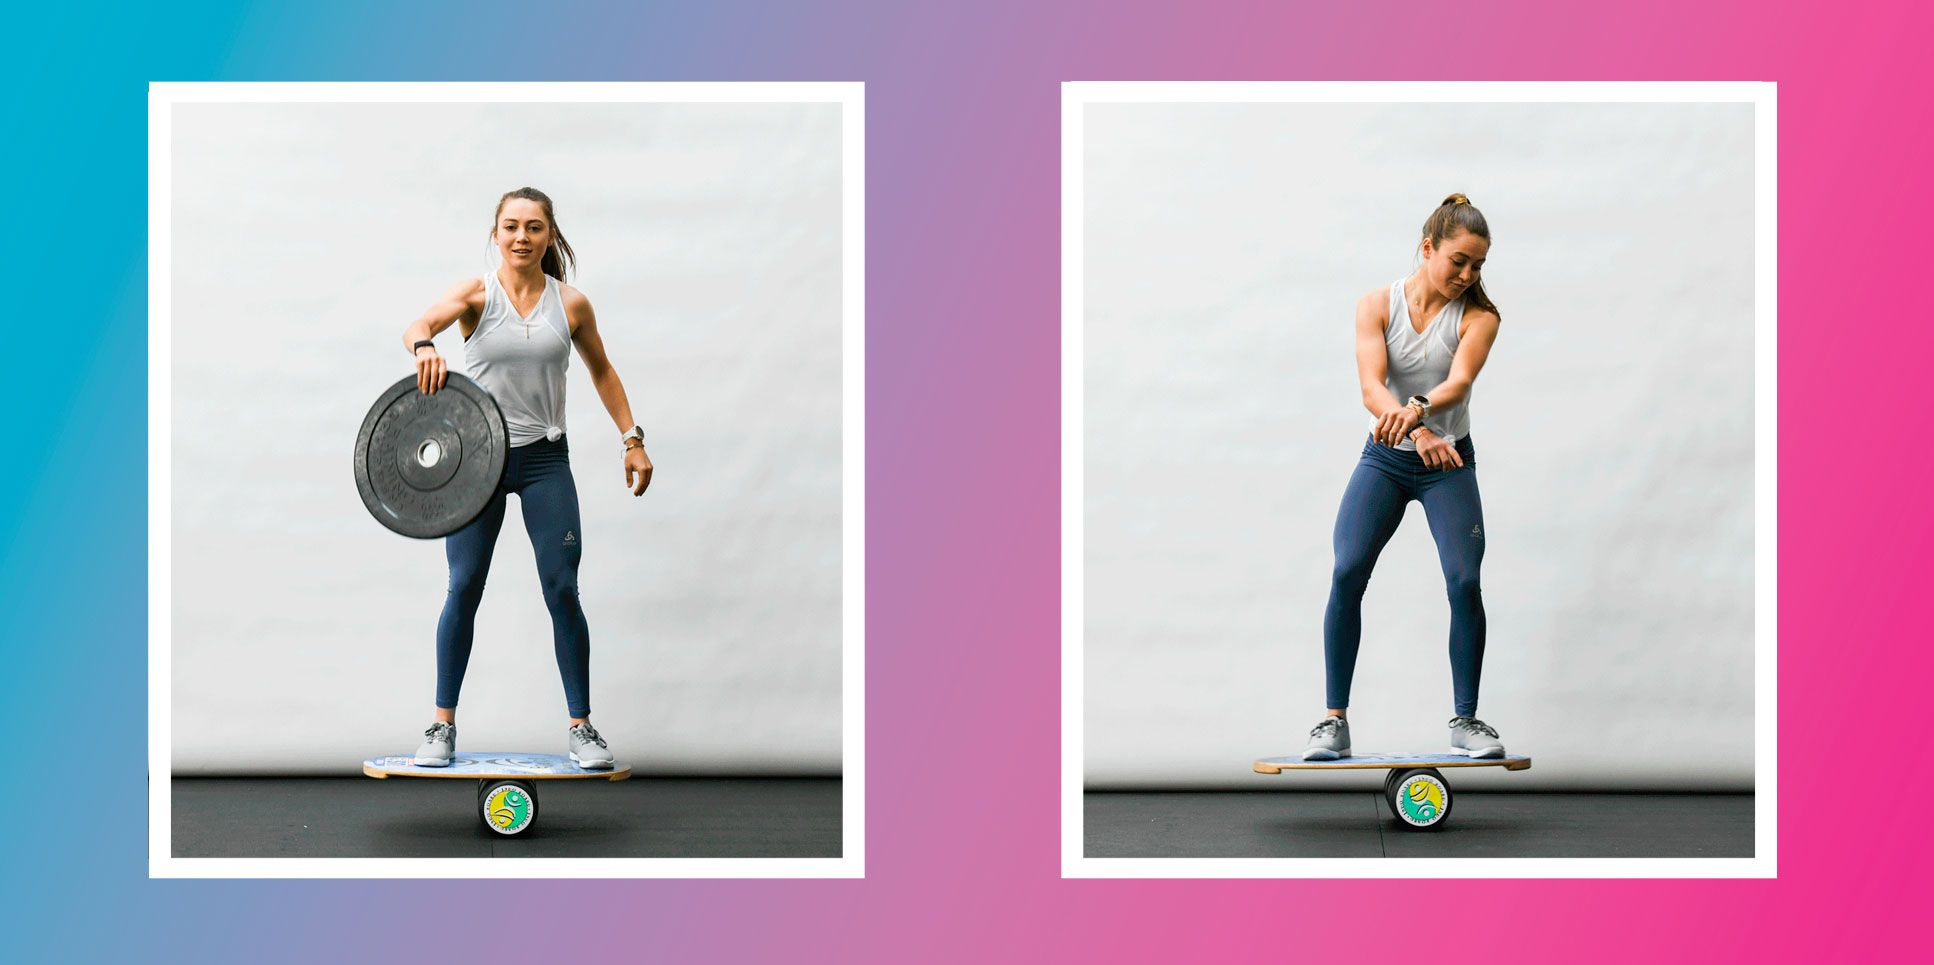 Kate Courtney Shares 11 Badass Balance Moves For Killer Core Strength